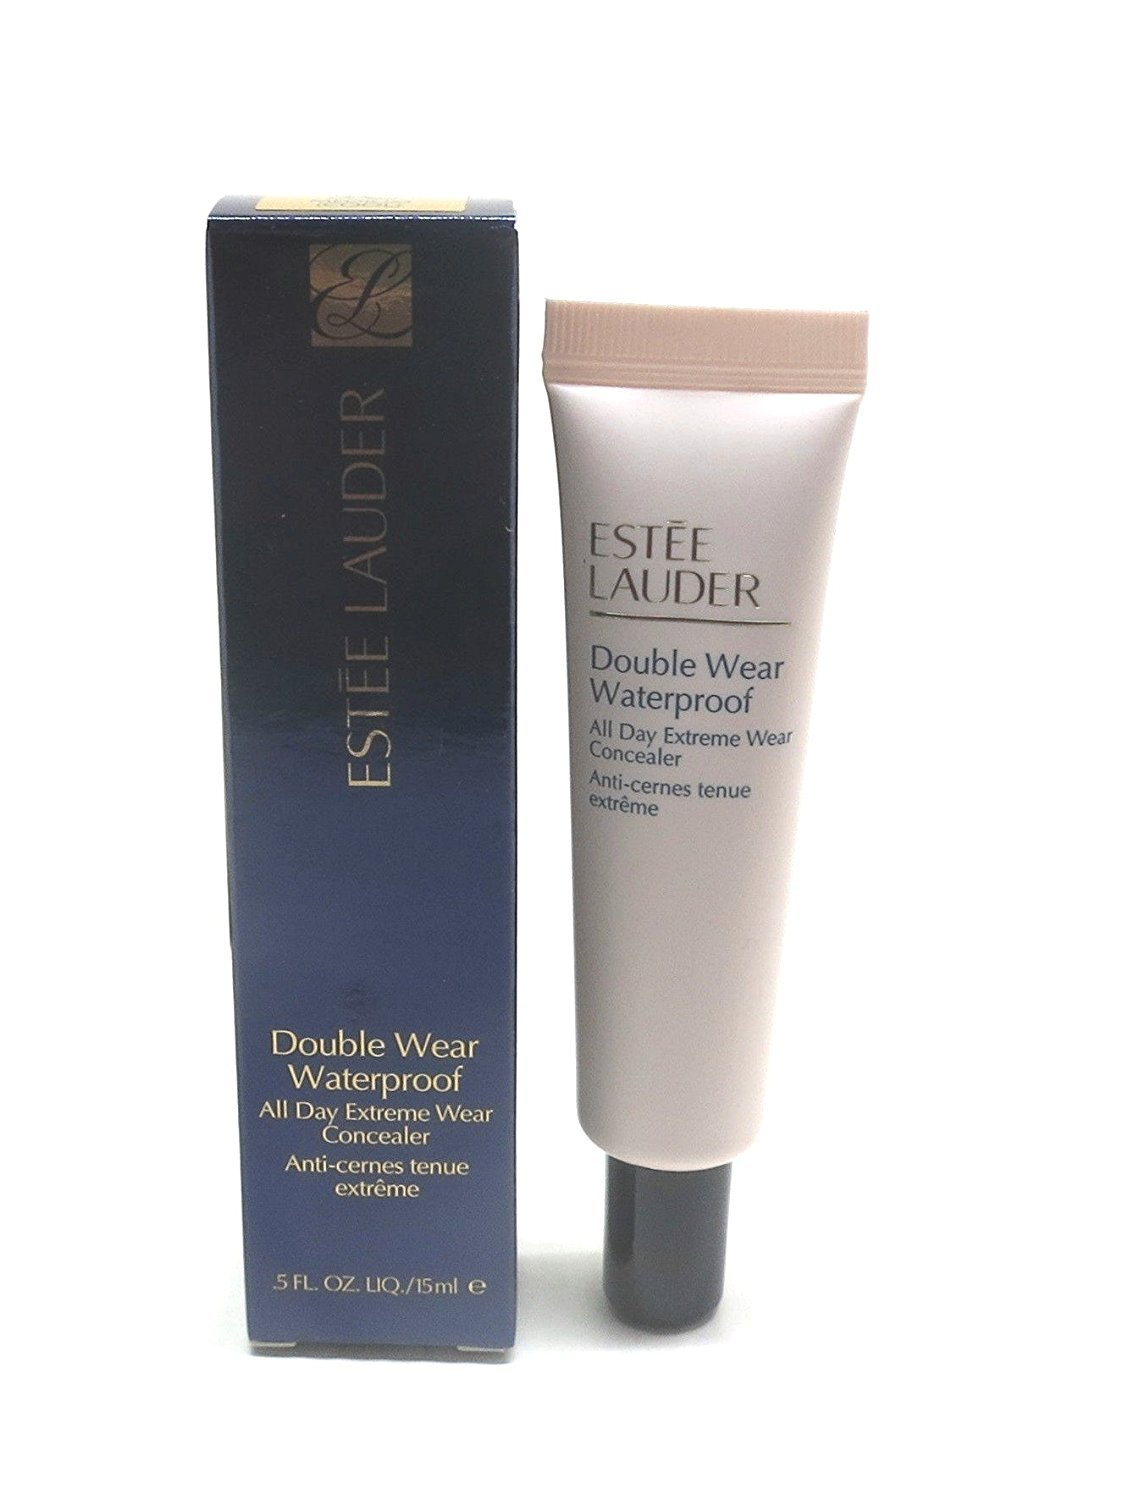 Double Wear Waterproof Concealer by Estee Lauder 1C Light 15ml